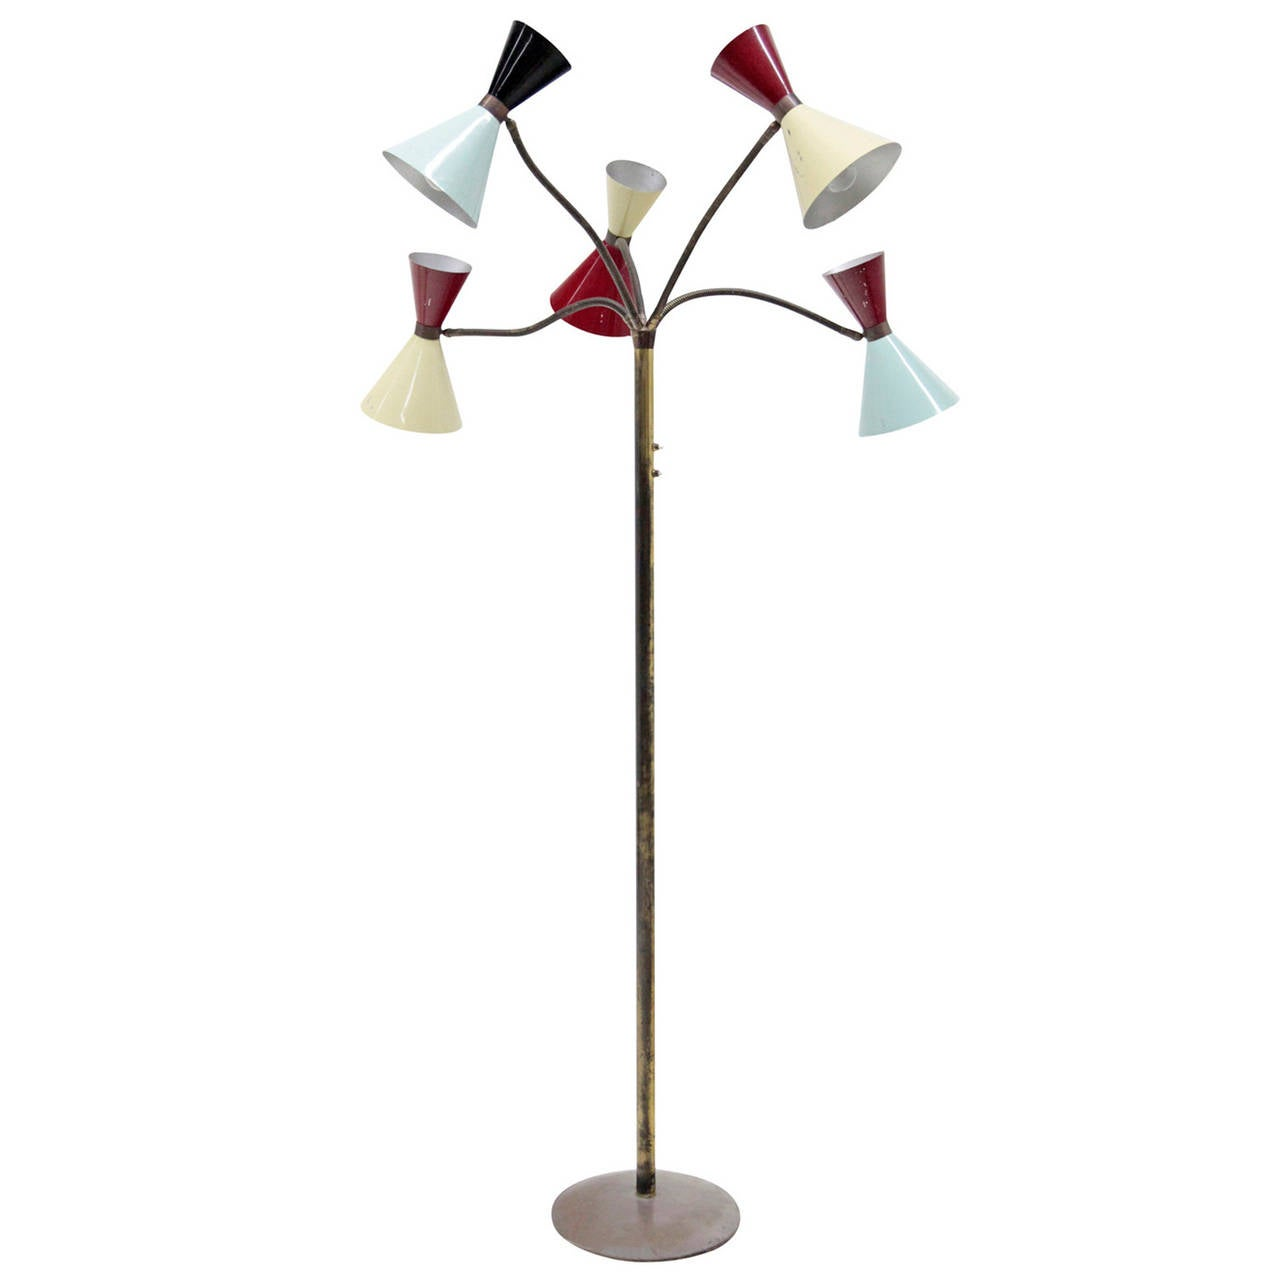 Italian floor lamp from the 1970s at 1stdibs for 1970s floor lamps